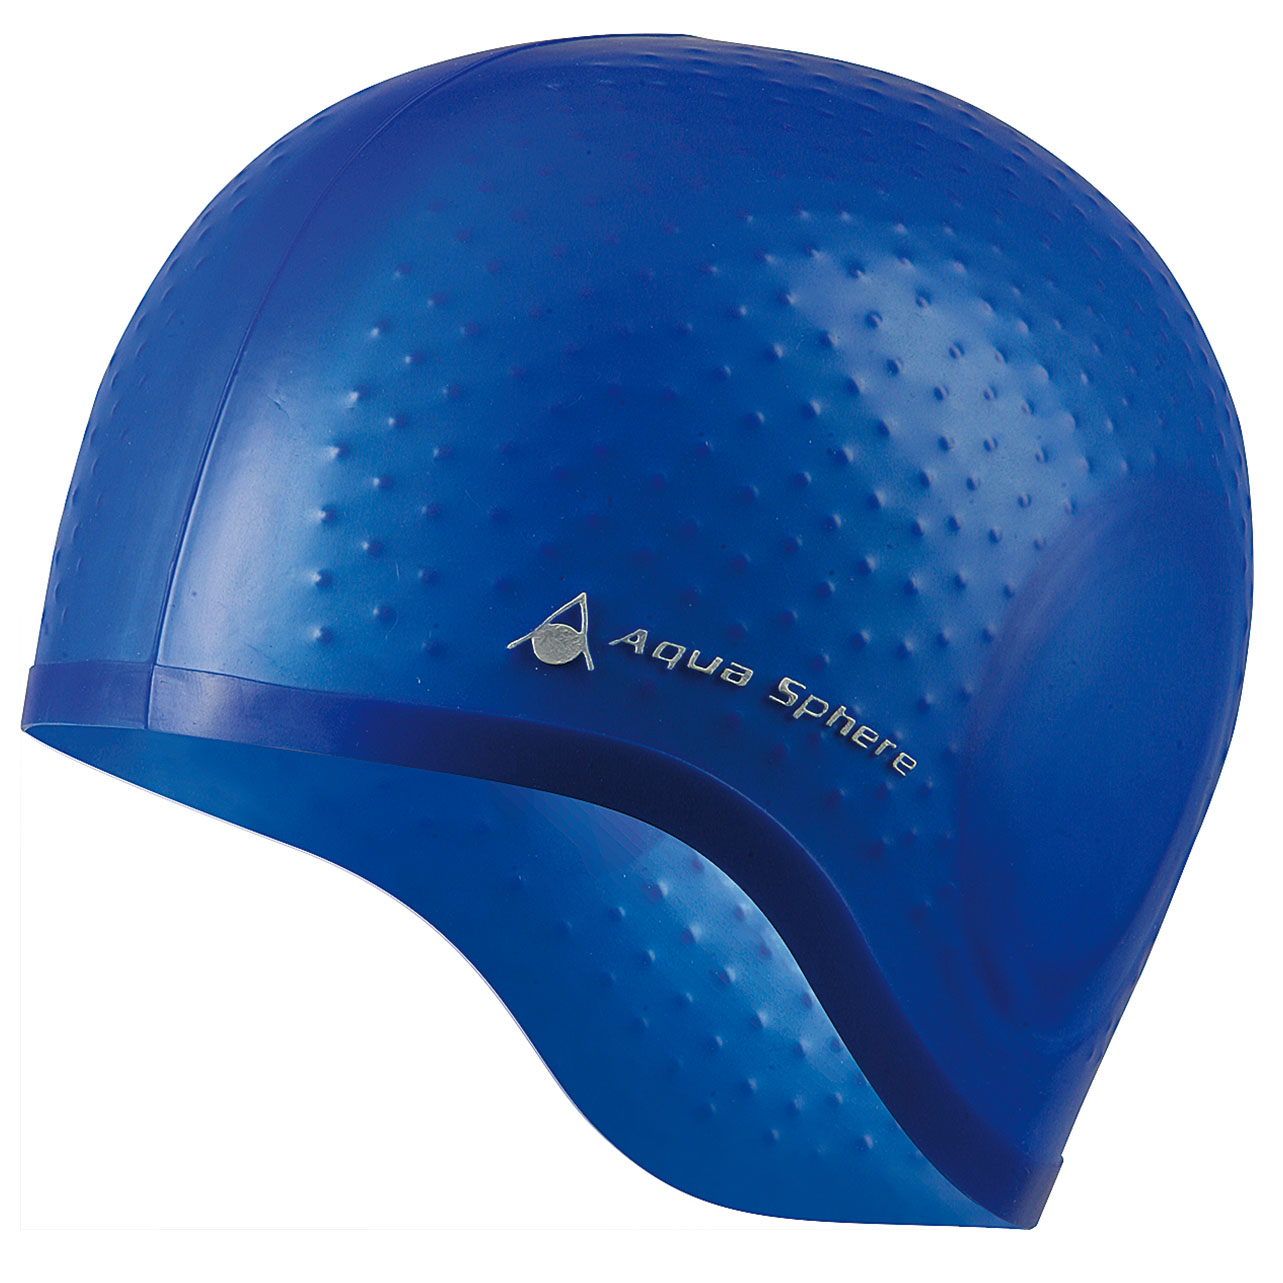 Aqua Sphere Aqua Glide Swimming Cap  Blue